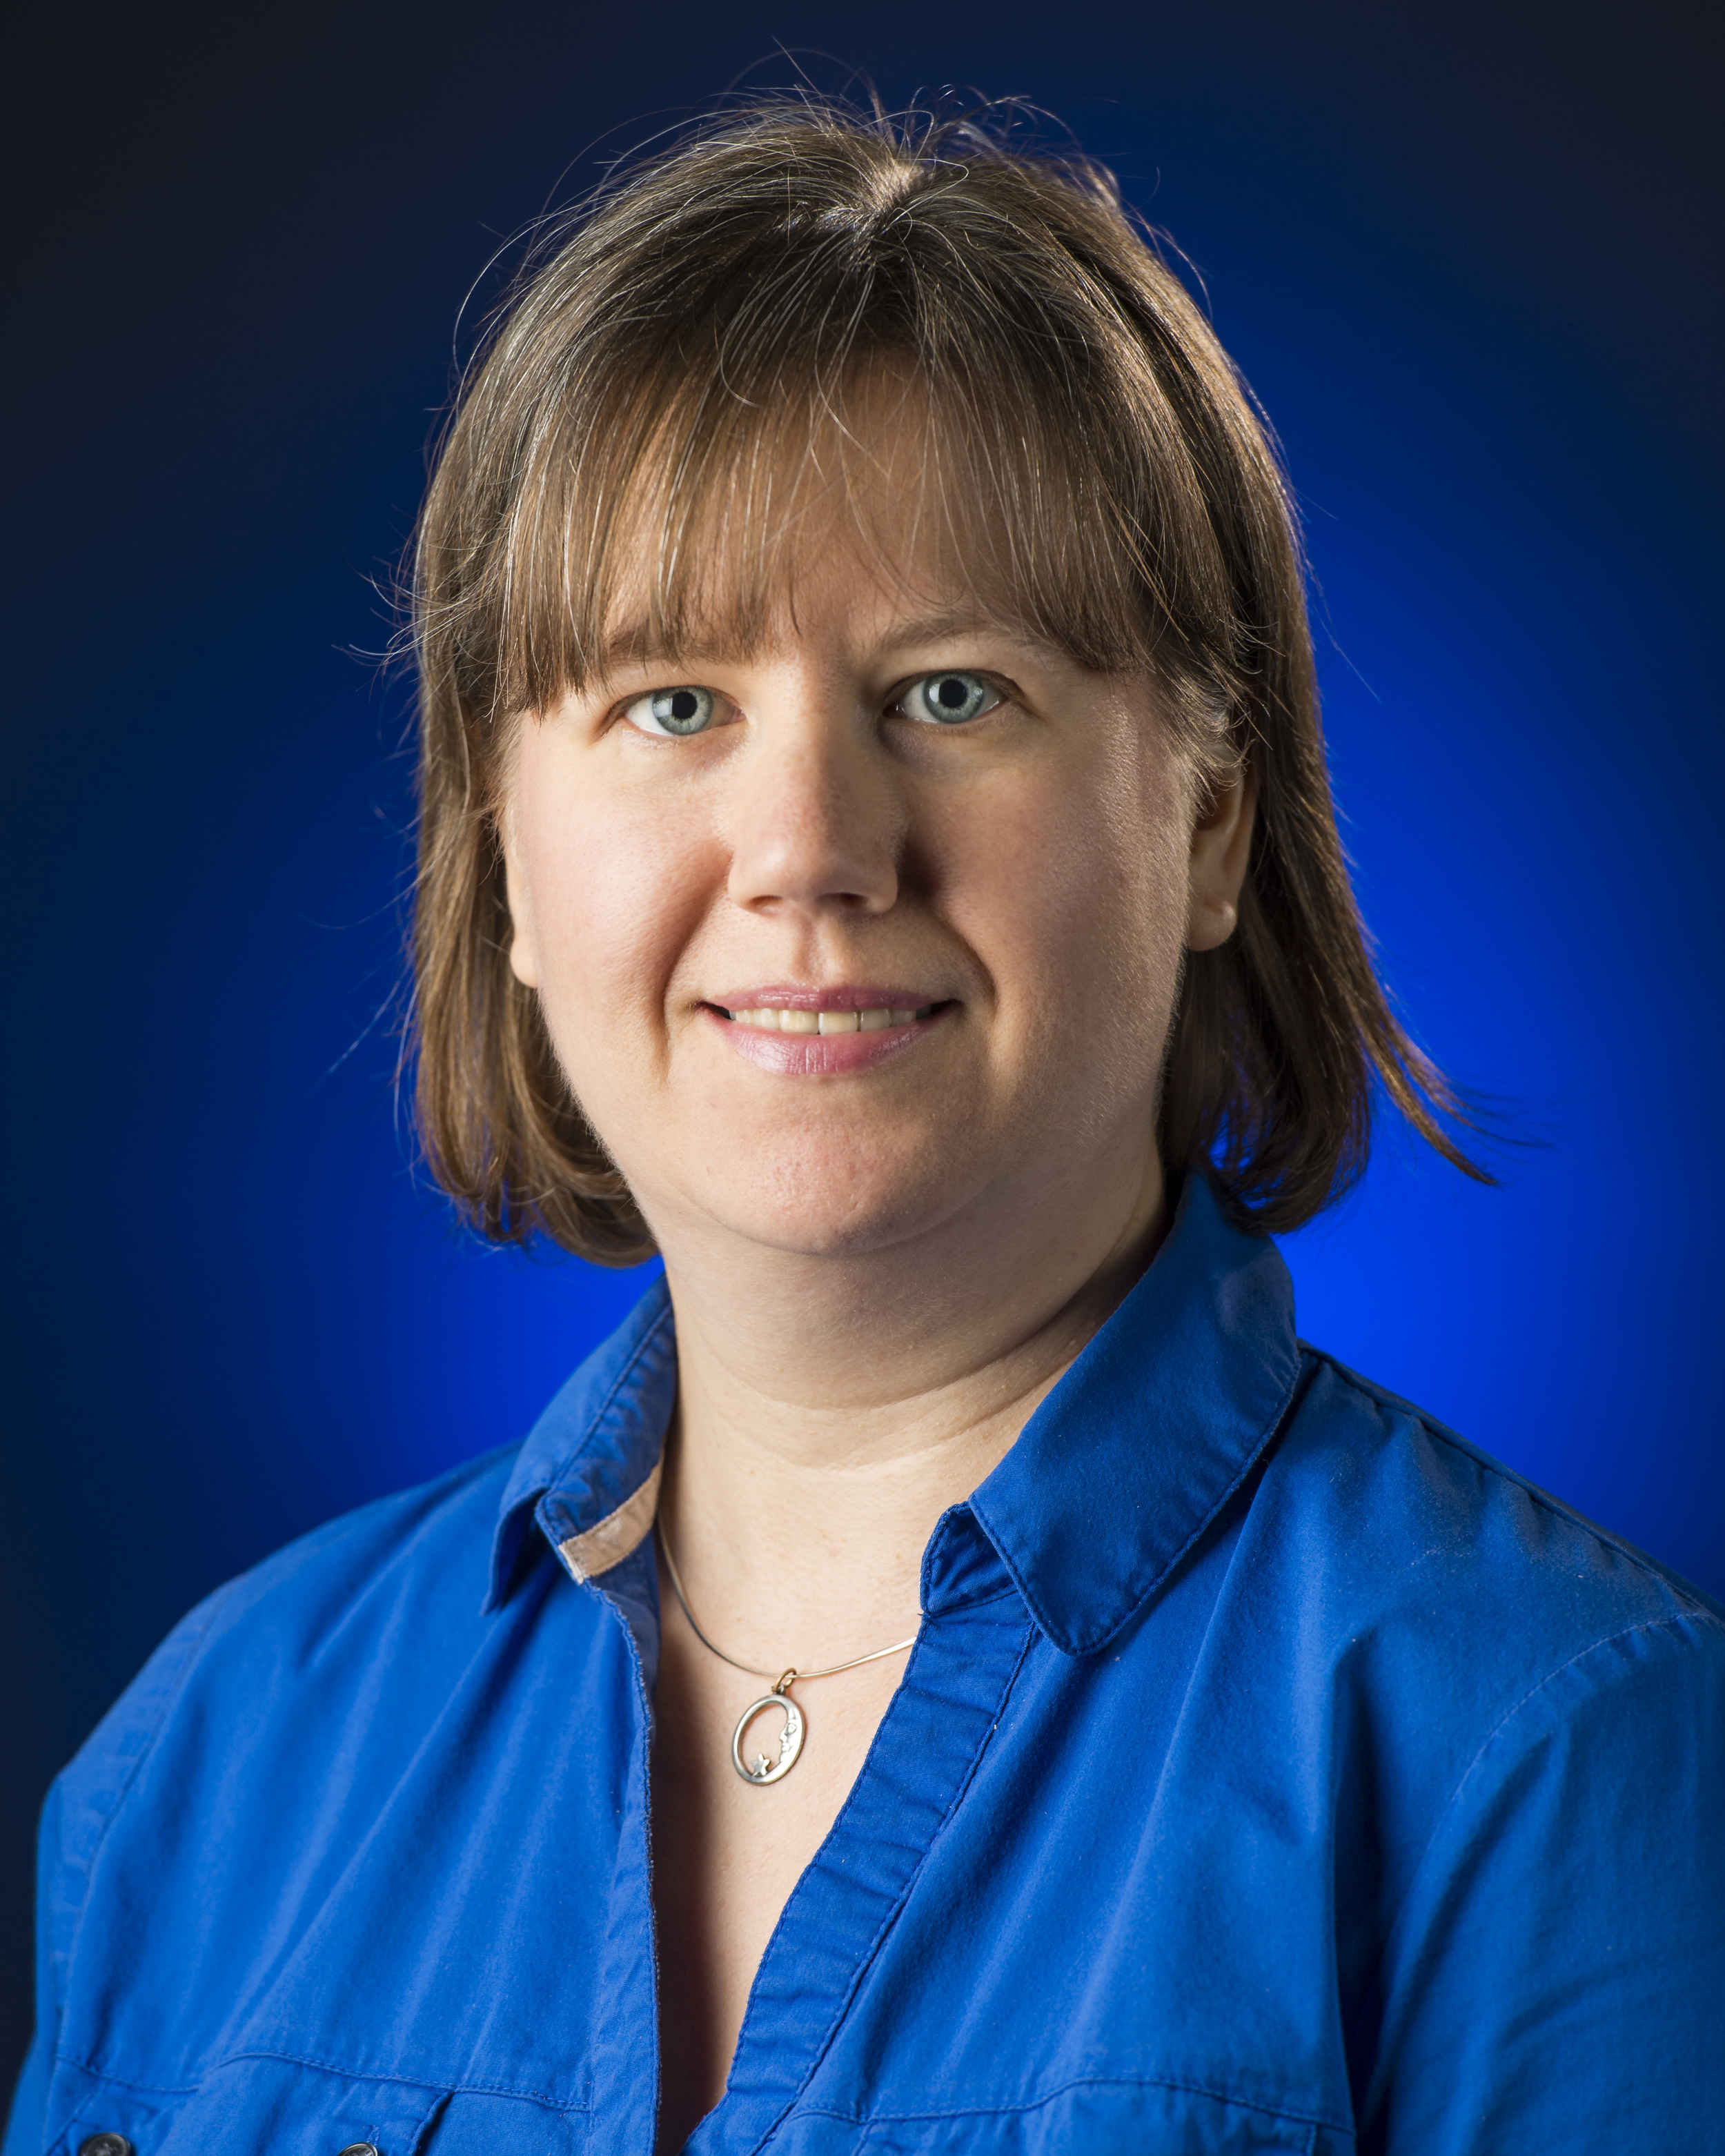 Dr. Sarah Noble talks about the LADEE mission and an epiphany she had in graduate school. For more about Dr. Noble, visit her  website .